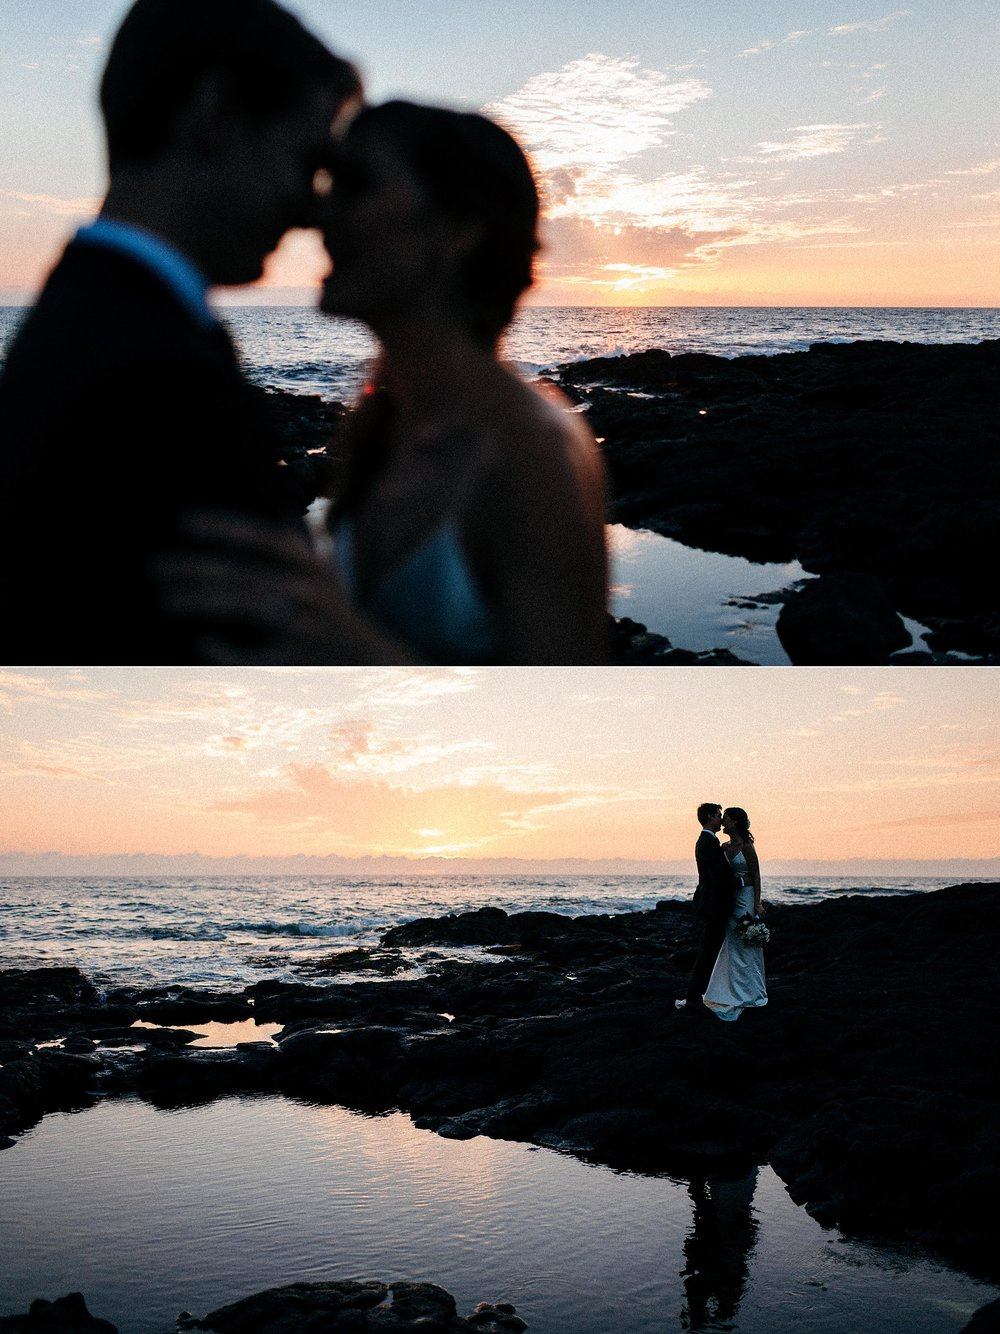 Kona-Big-Island-Hawaii-New-Years-Eve-Wedding-with-Ceremony-at-Living-Stones-Church-and-Reception-at-Daylight-Mind-Coffee_0021.jpg